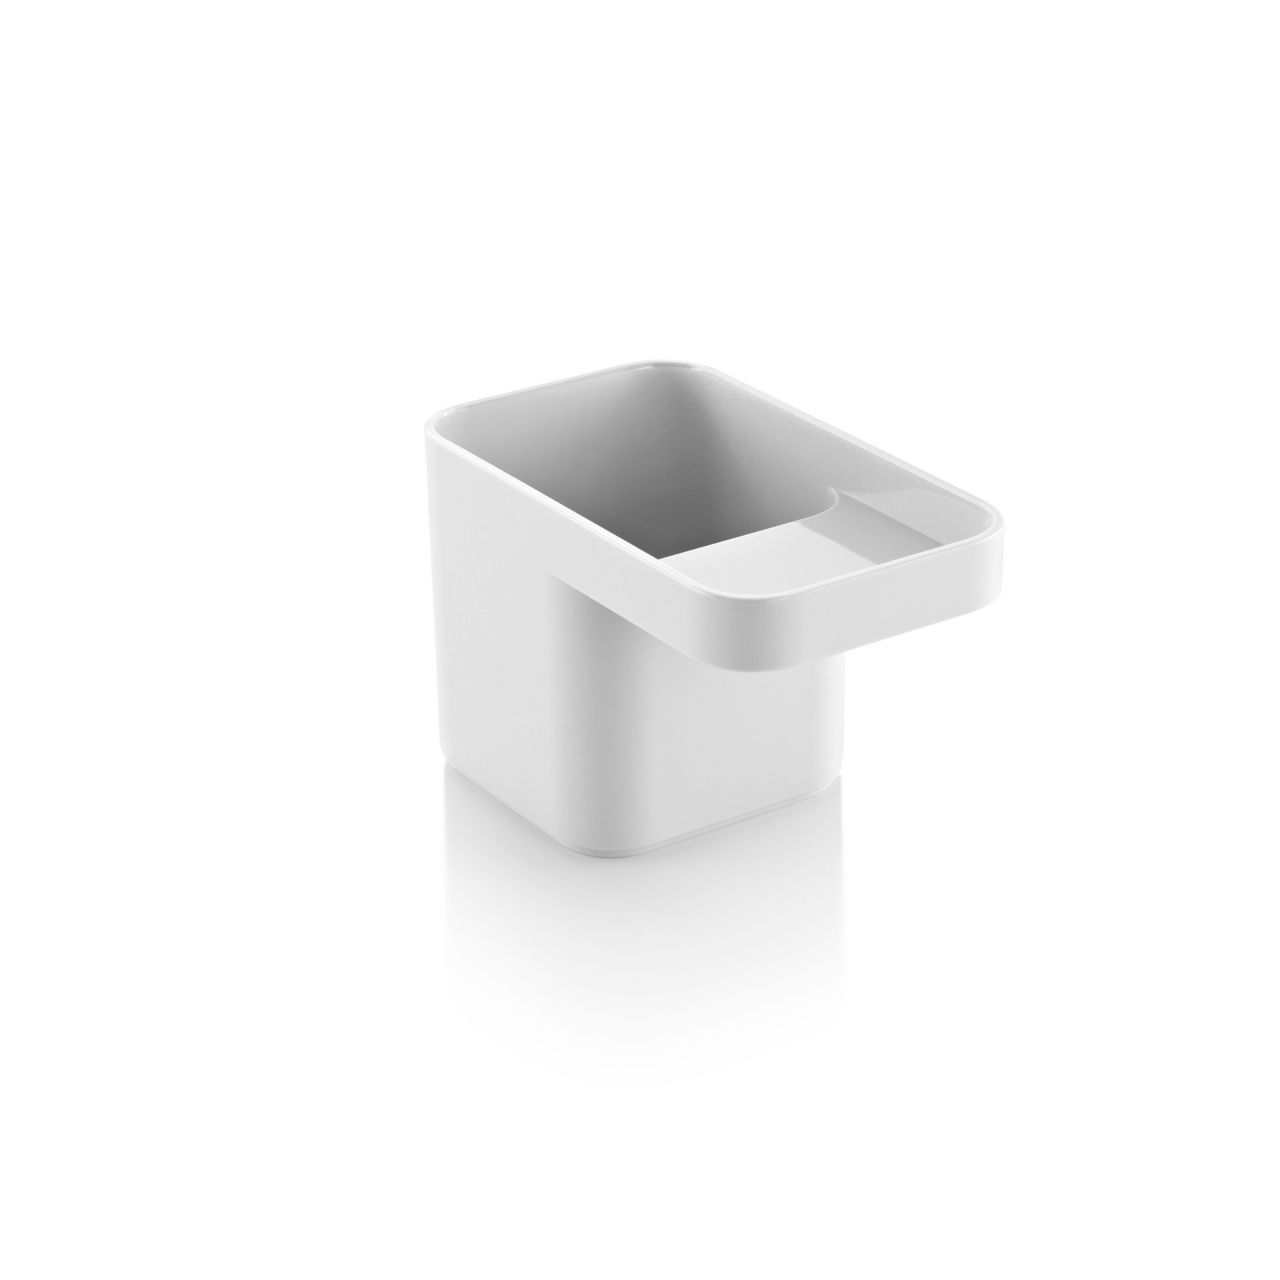 Formwork Pencil Cup in Concrete by Herman Miller